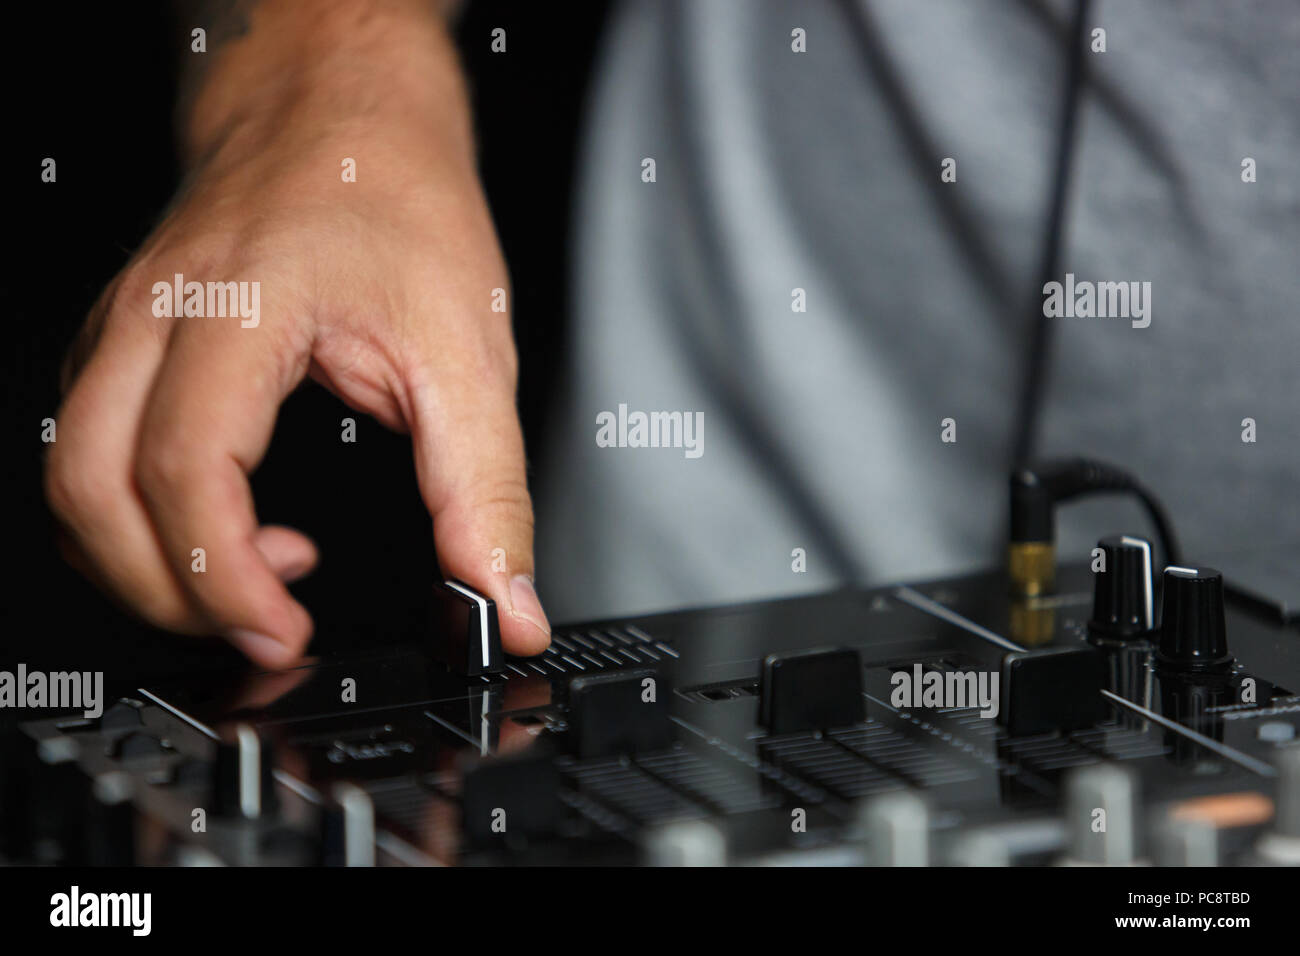 Hand of disc jockey adjusting the crossfader knob while palying live set on party in night club - Stock Image